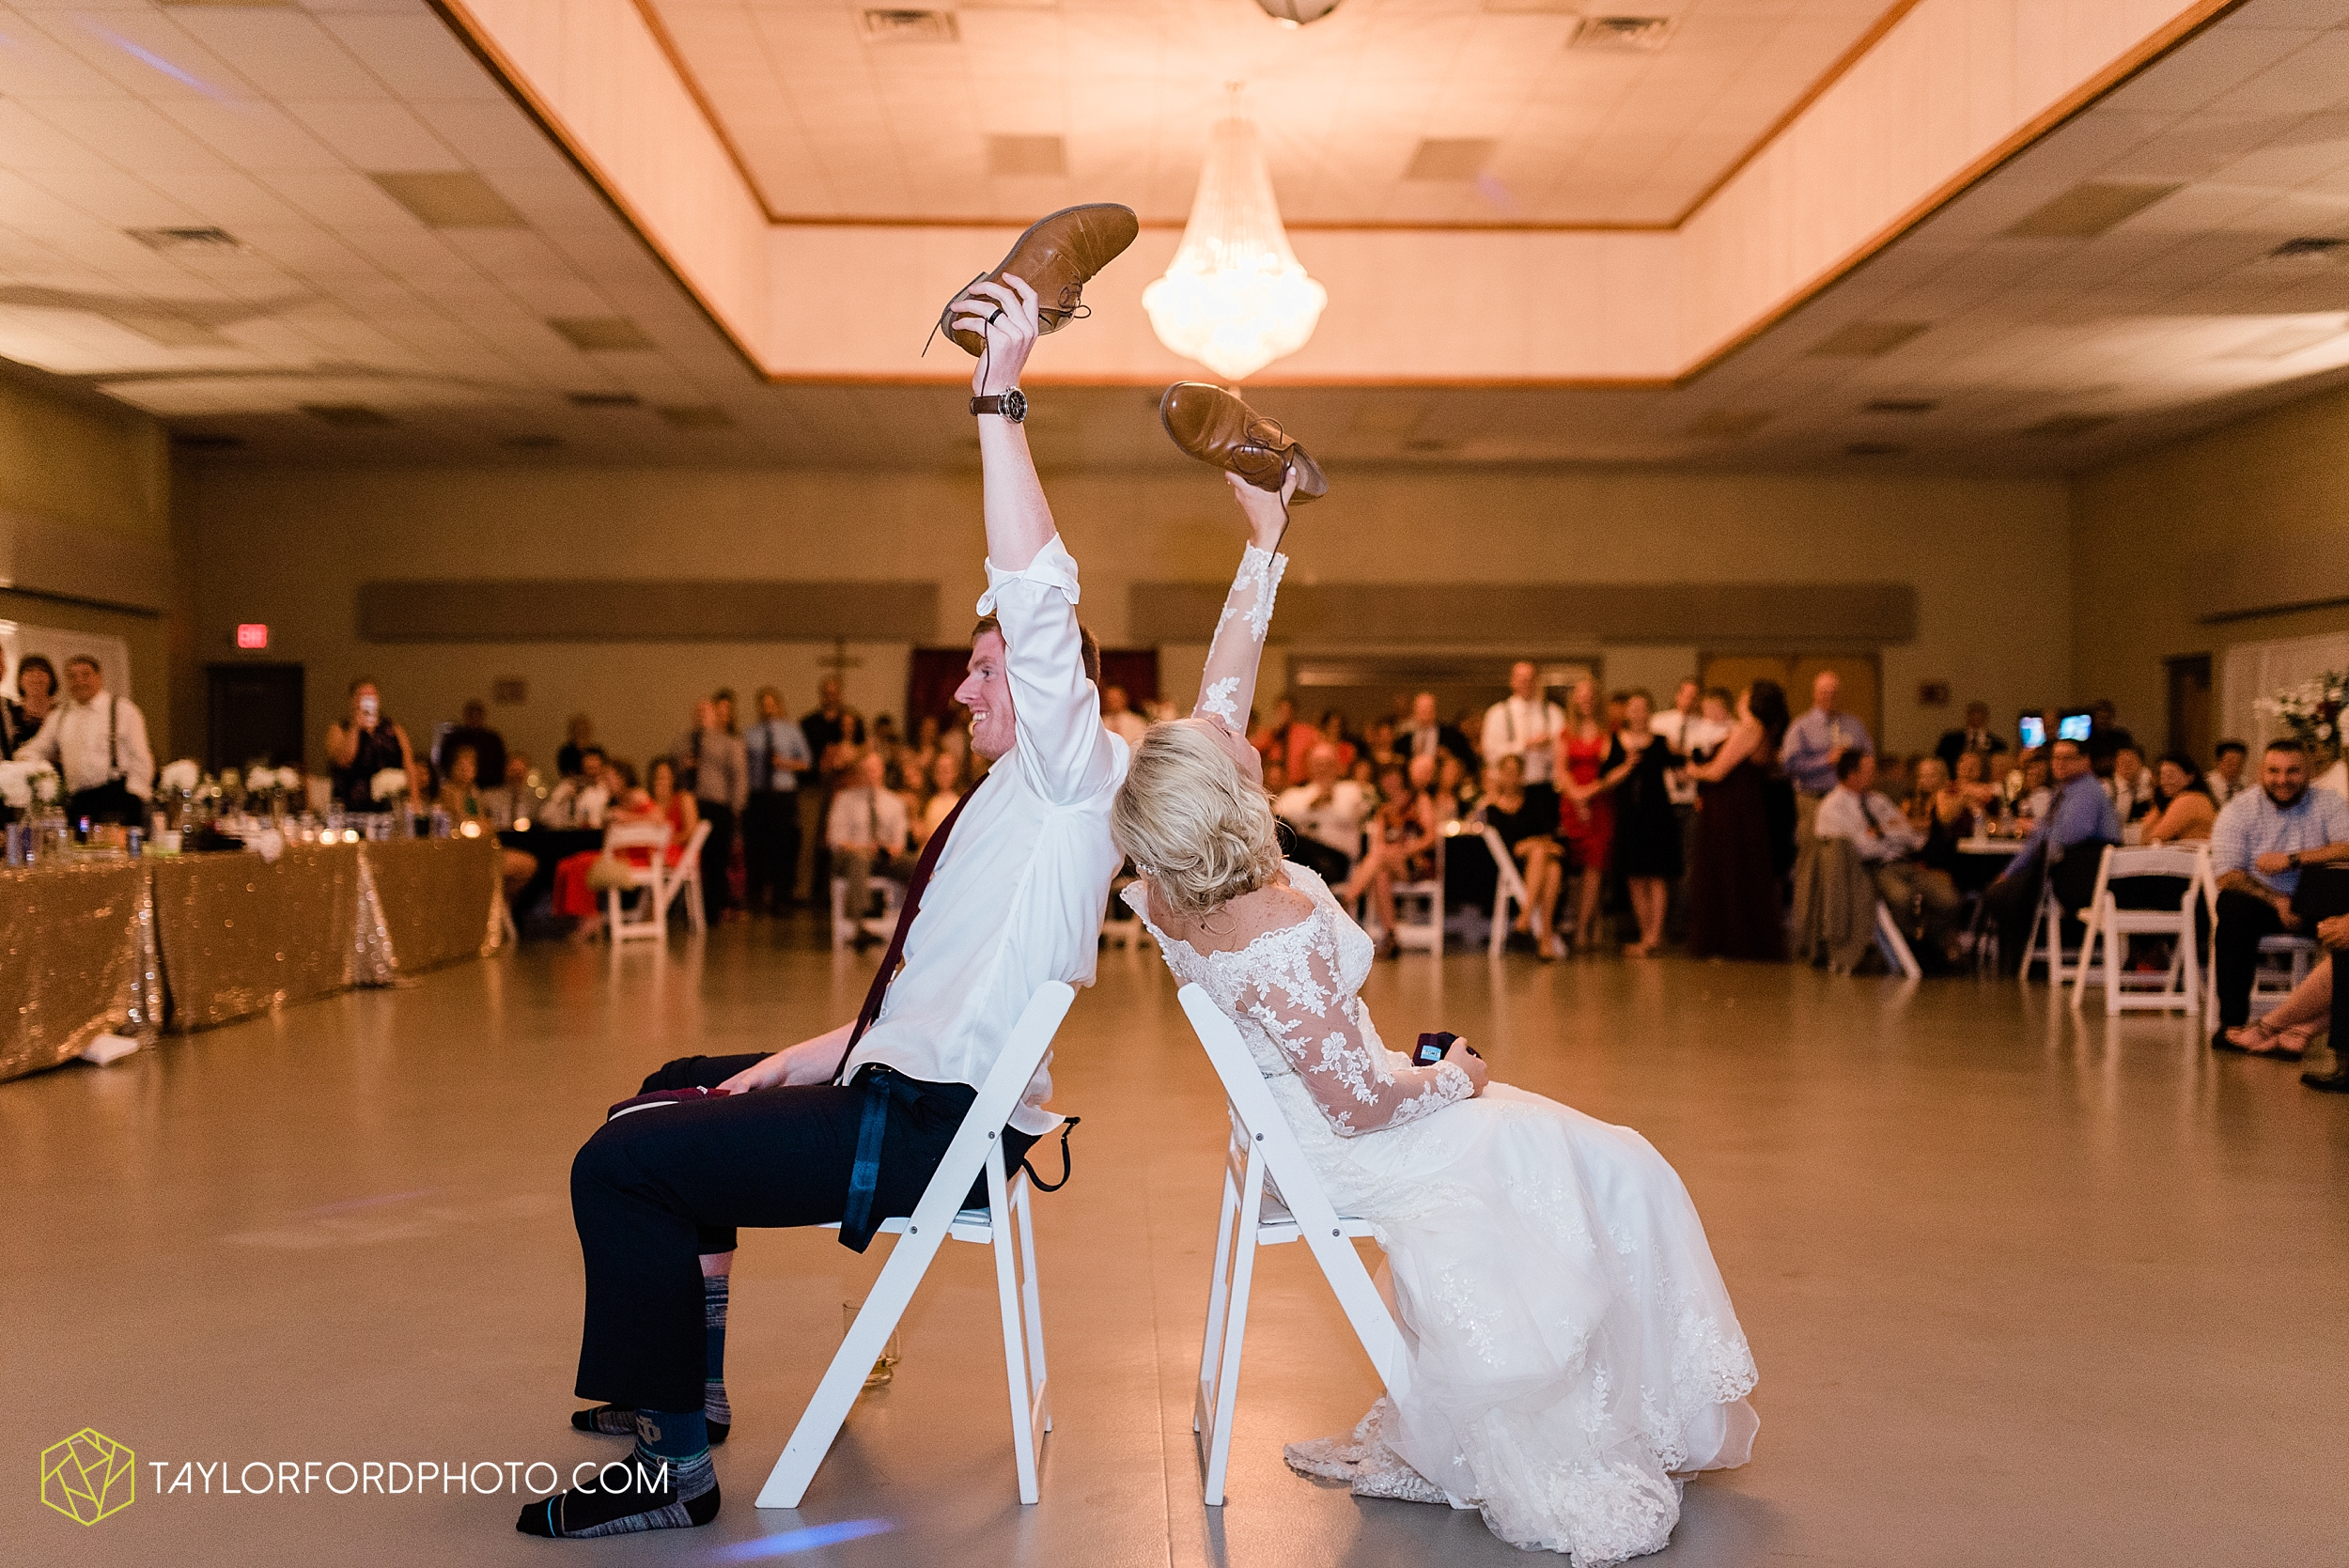 gayle-rayman-mike-steele-ottoville-ohio-wedding-immaculate-conception-parish-center-wedding-sycamore-lake-winery-wannamachers-photographer-taylor-ford-photography_0446.jpg